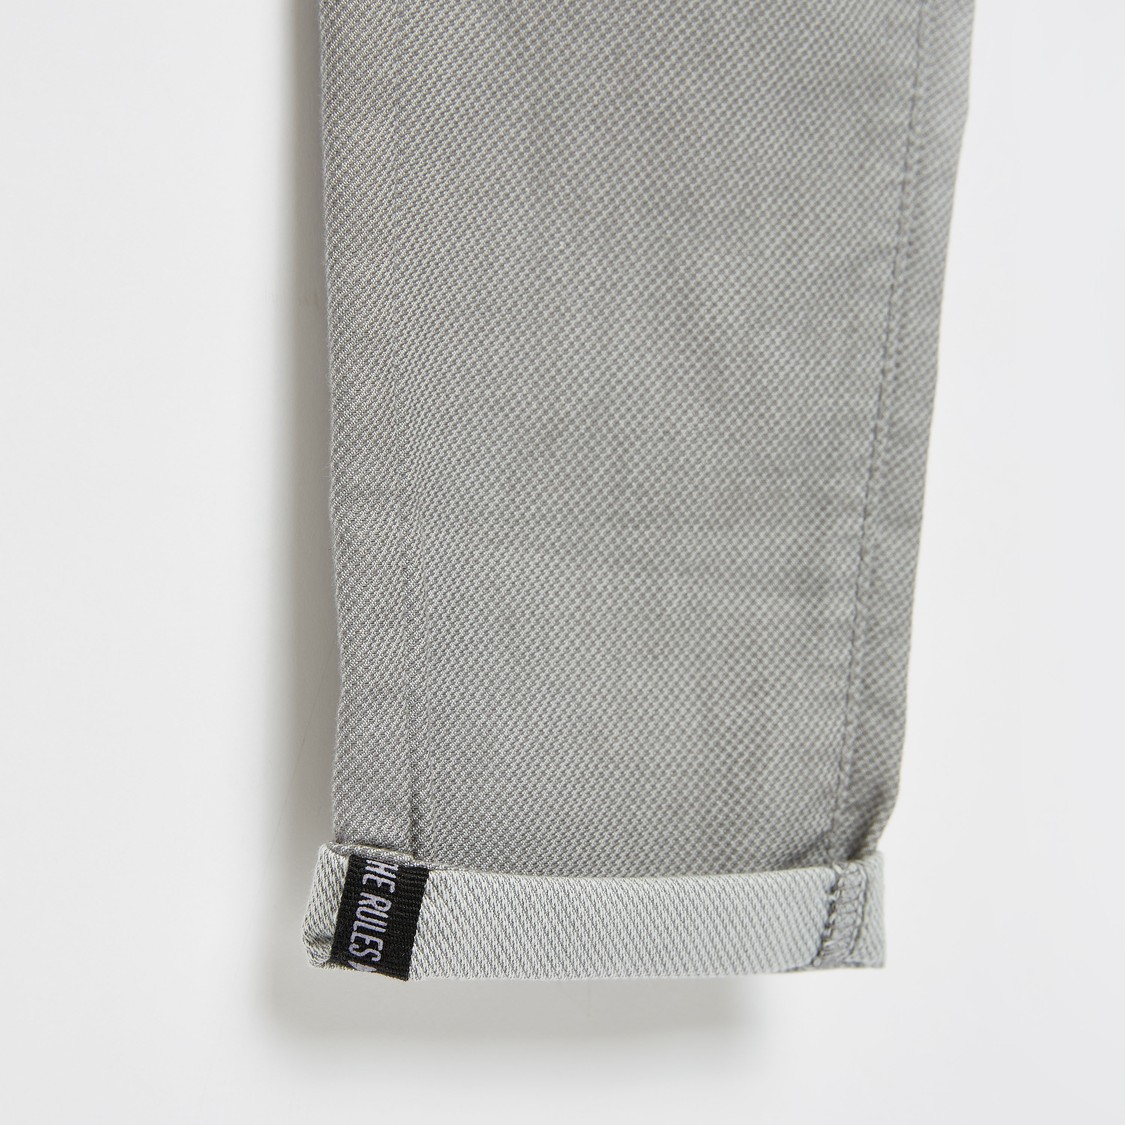 Textured Jeans with Pockets and Button Closure